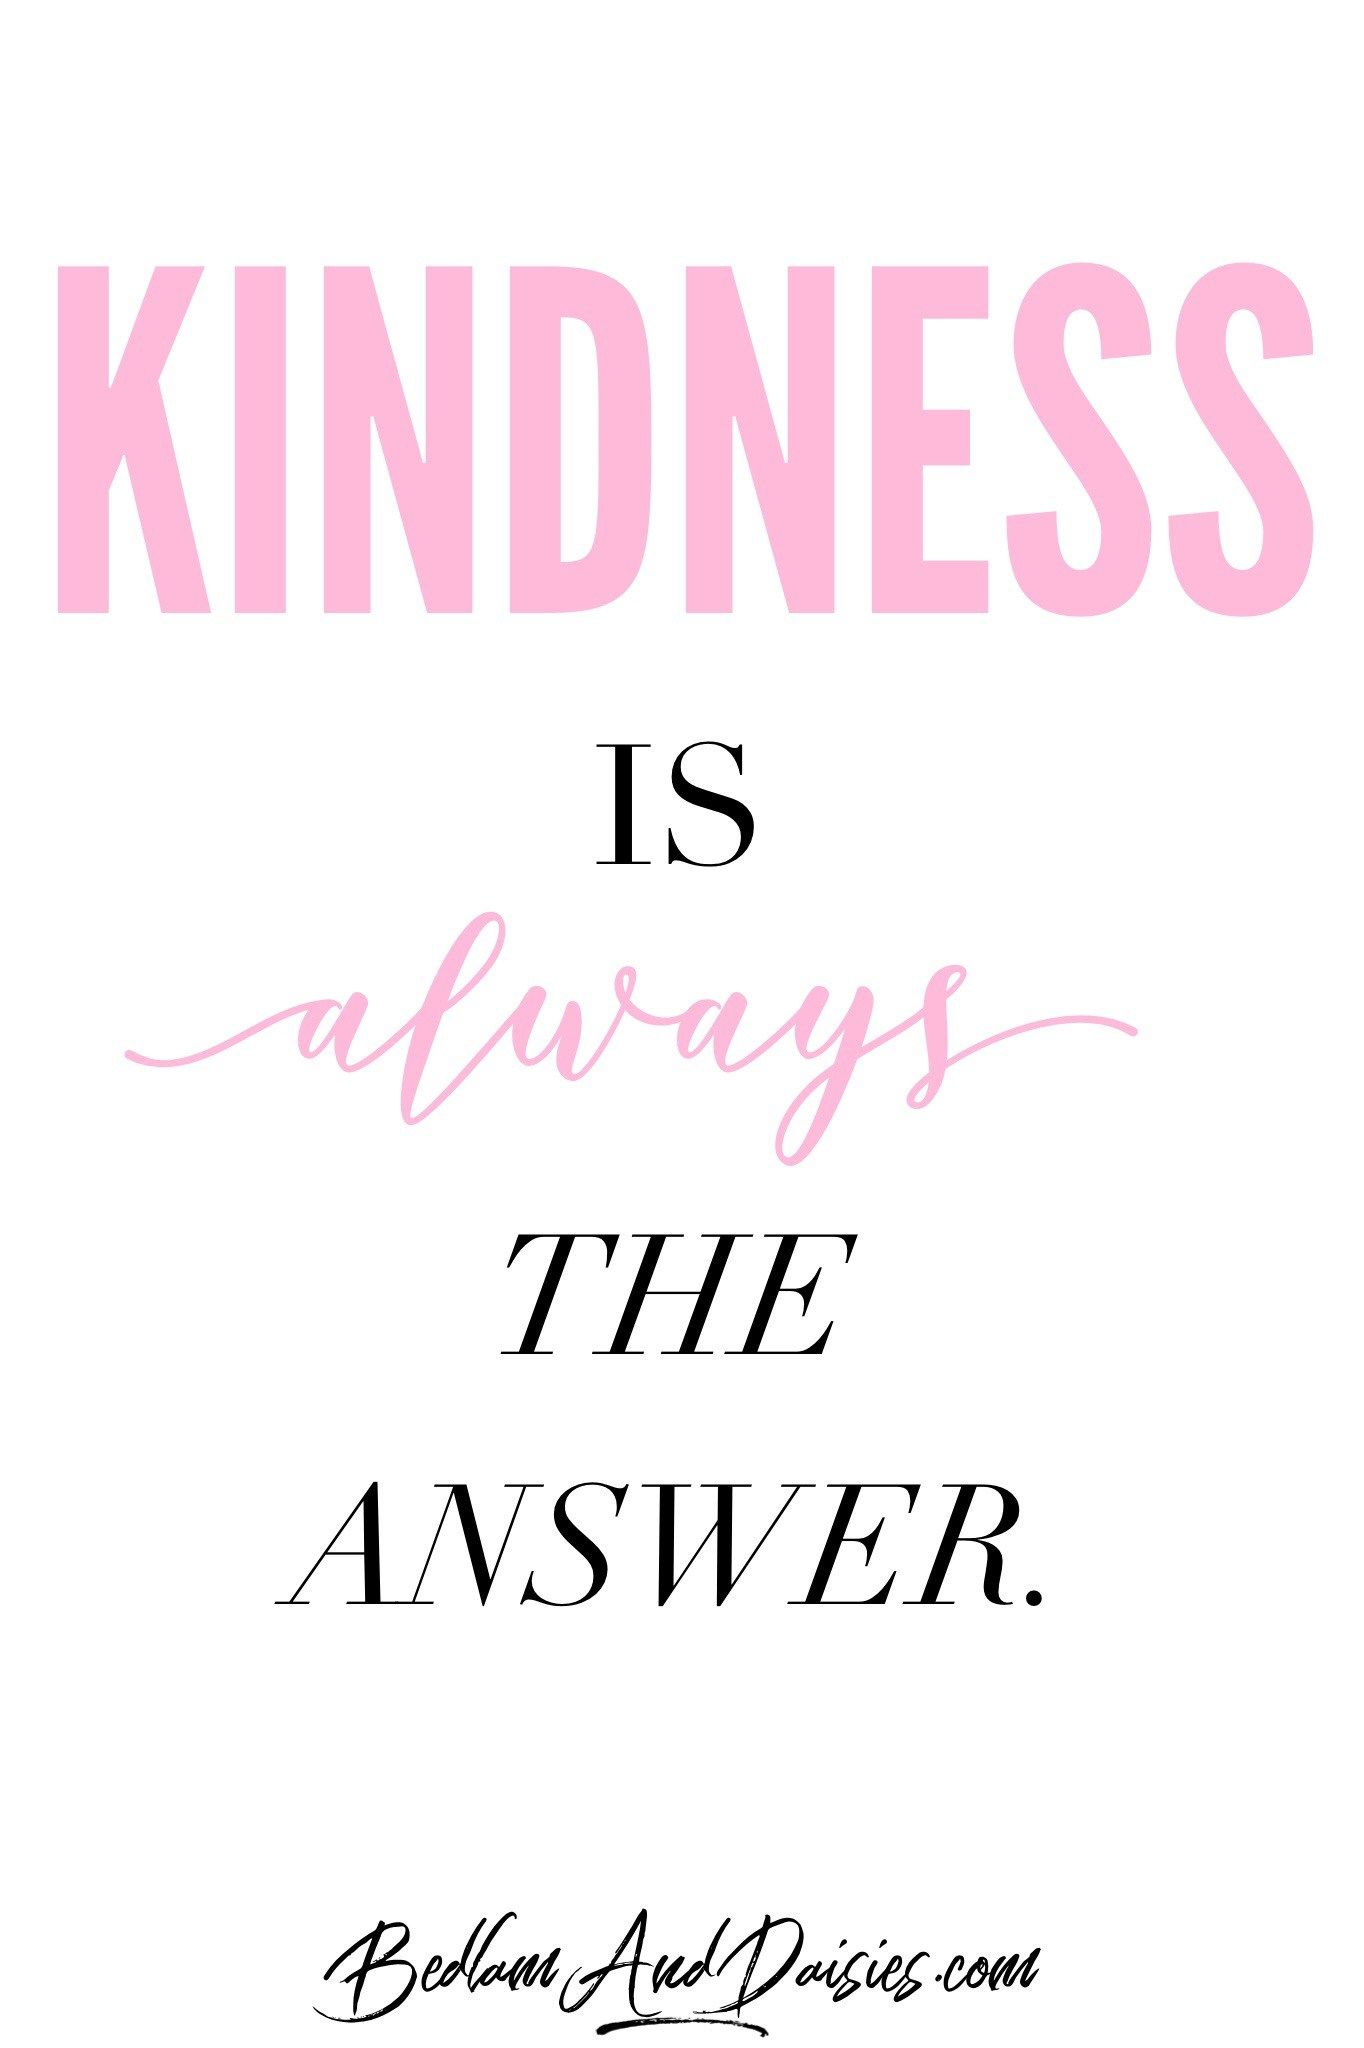 Kindness Is Always The Answer Bedlam Daisies Kindness Quotes Snap Quotes Wonder Quotes [ 2048 x 1364 Pixel ]